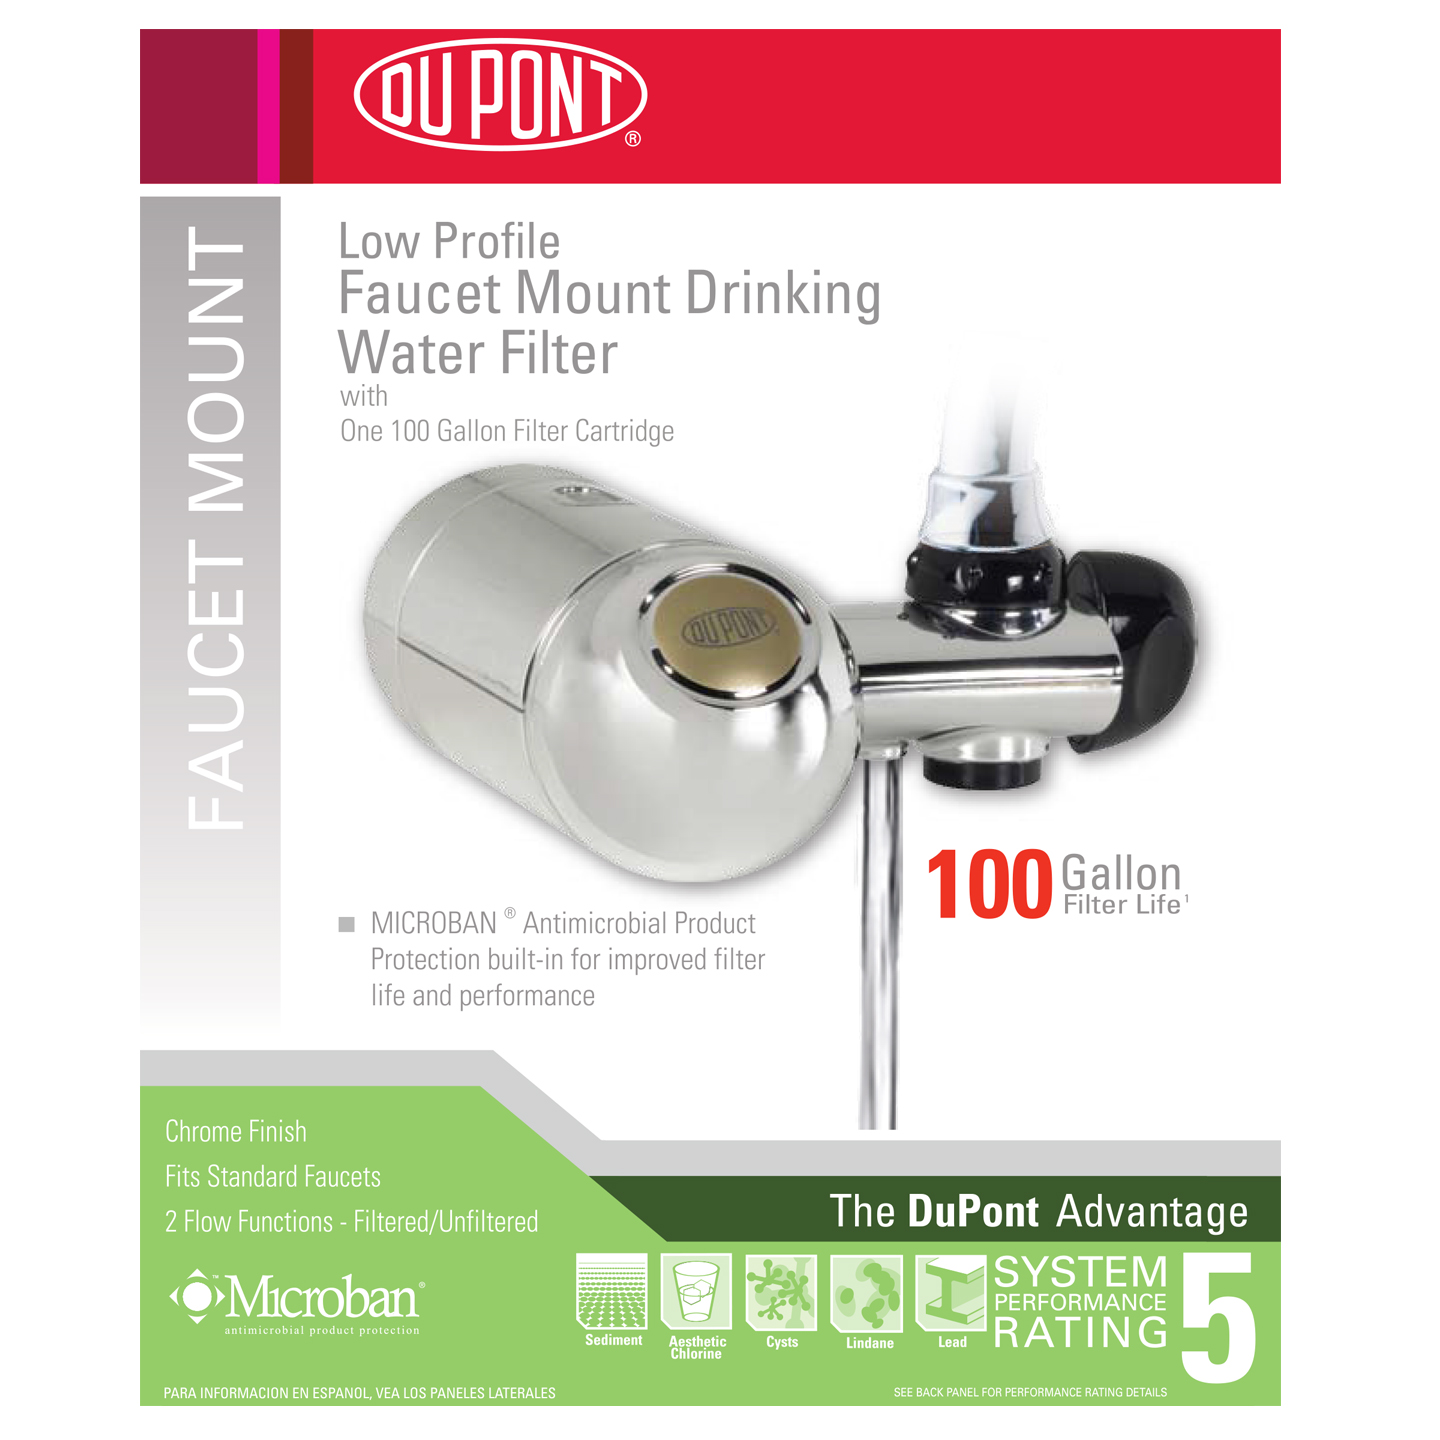 DuPont WFFM300XCH Low Profile Faucet Mount Drinking Water Filter ...